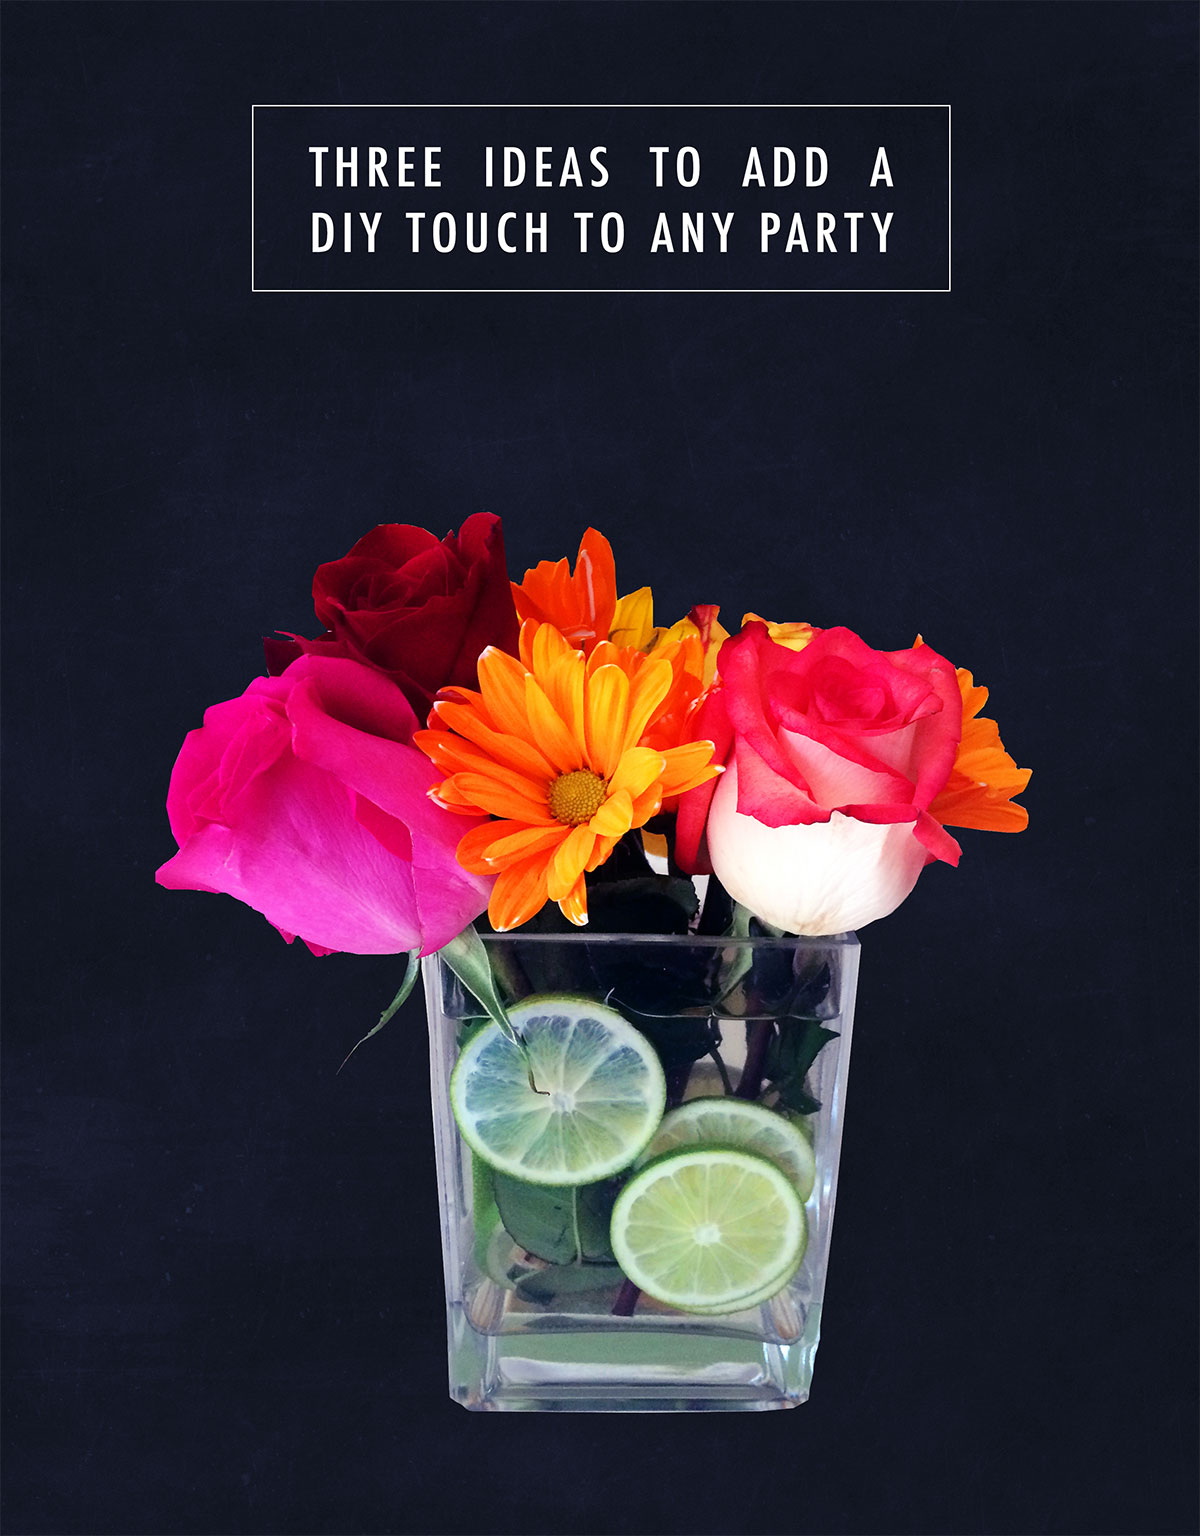 Three ideas to add a diy touch to any party. kraft&mint